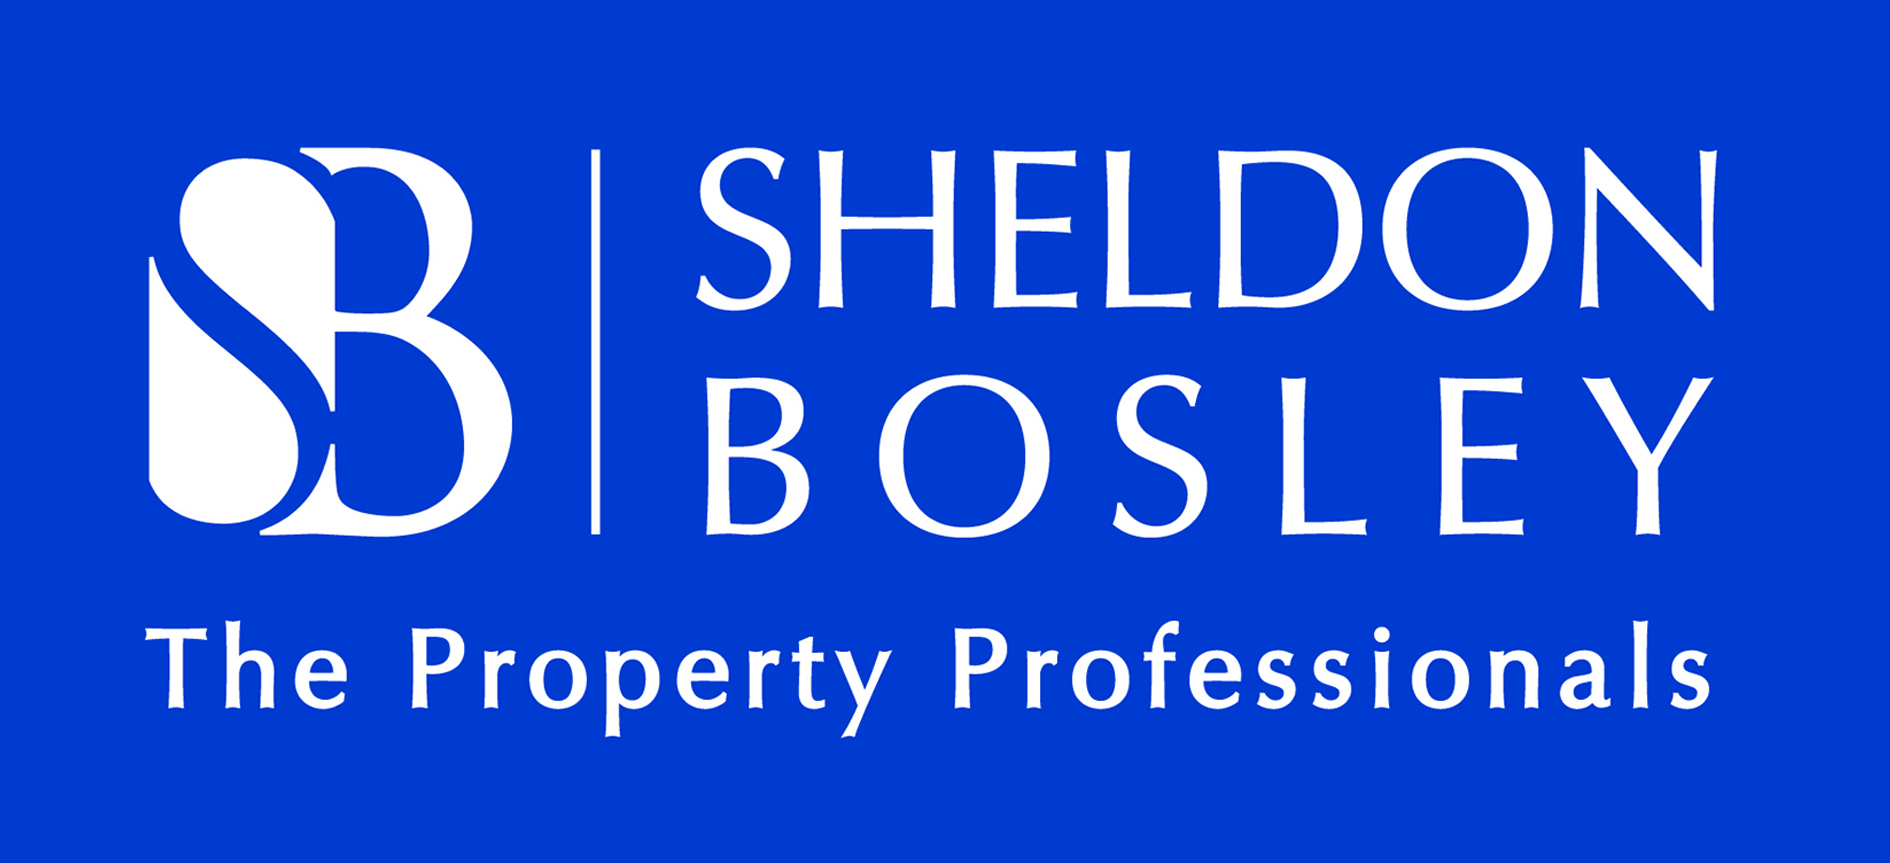 Sheldon Bosley Estate Agents logo